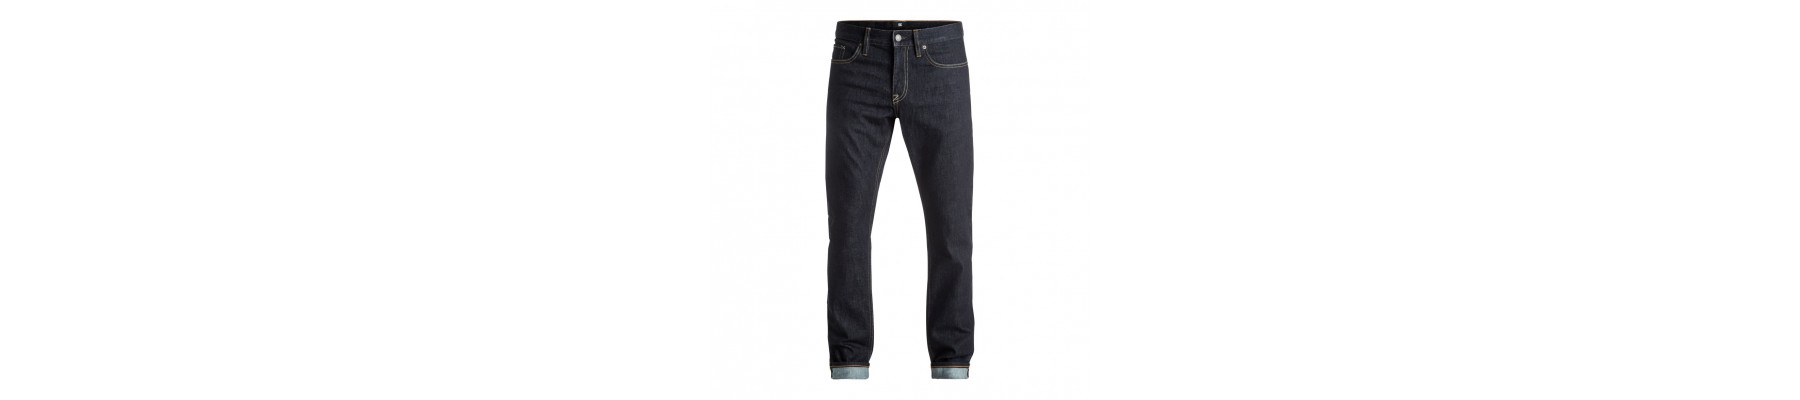 DC Worker Indigo Rinse Slim Fit Blue